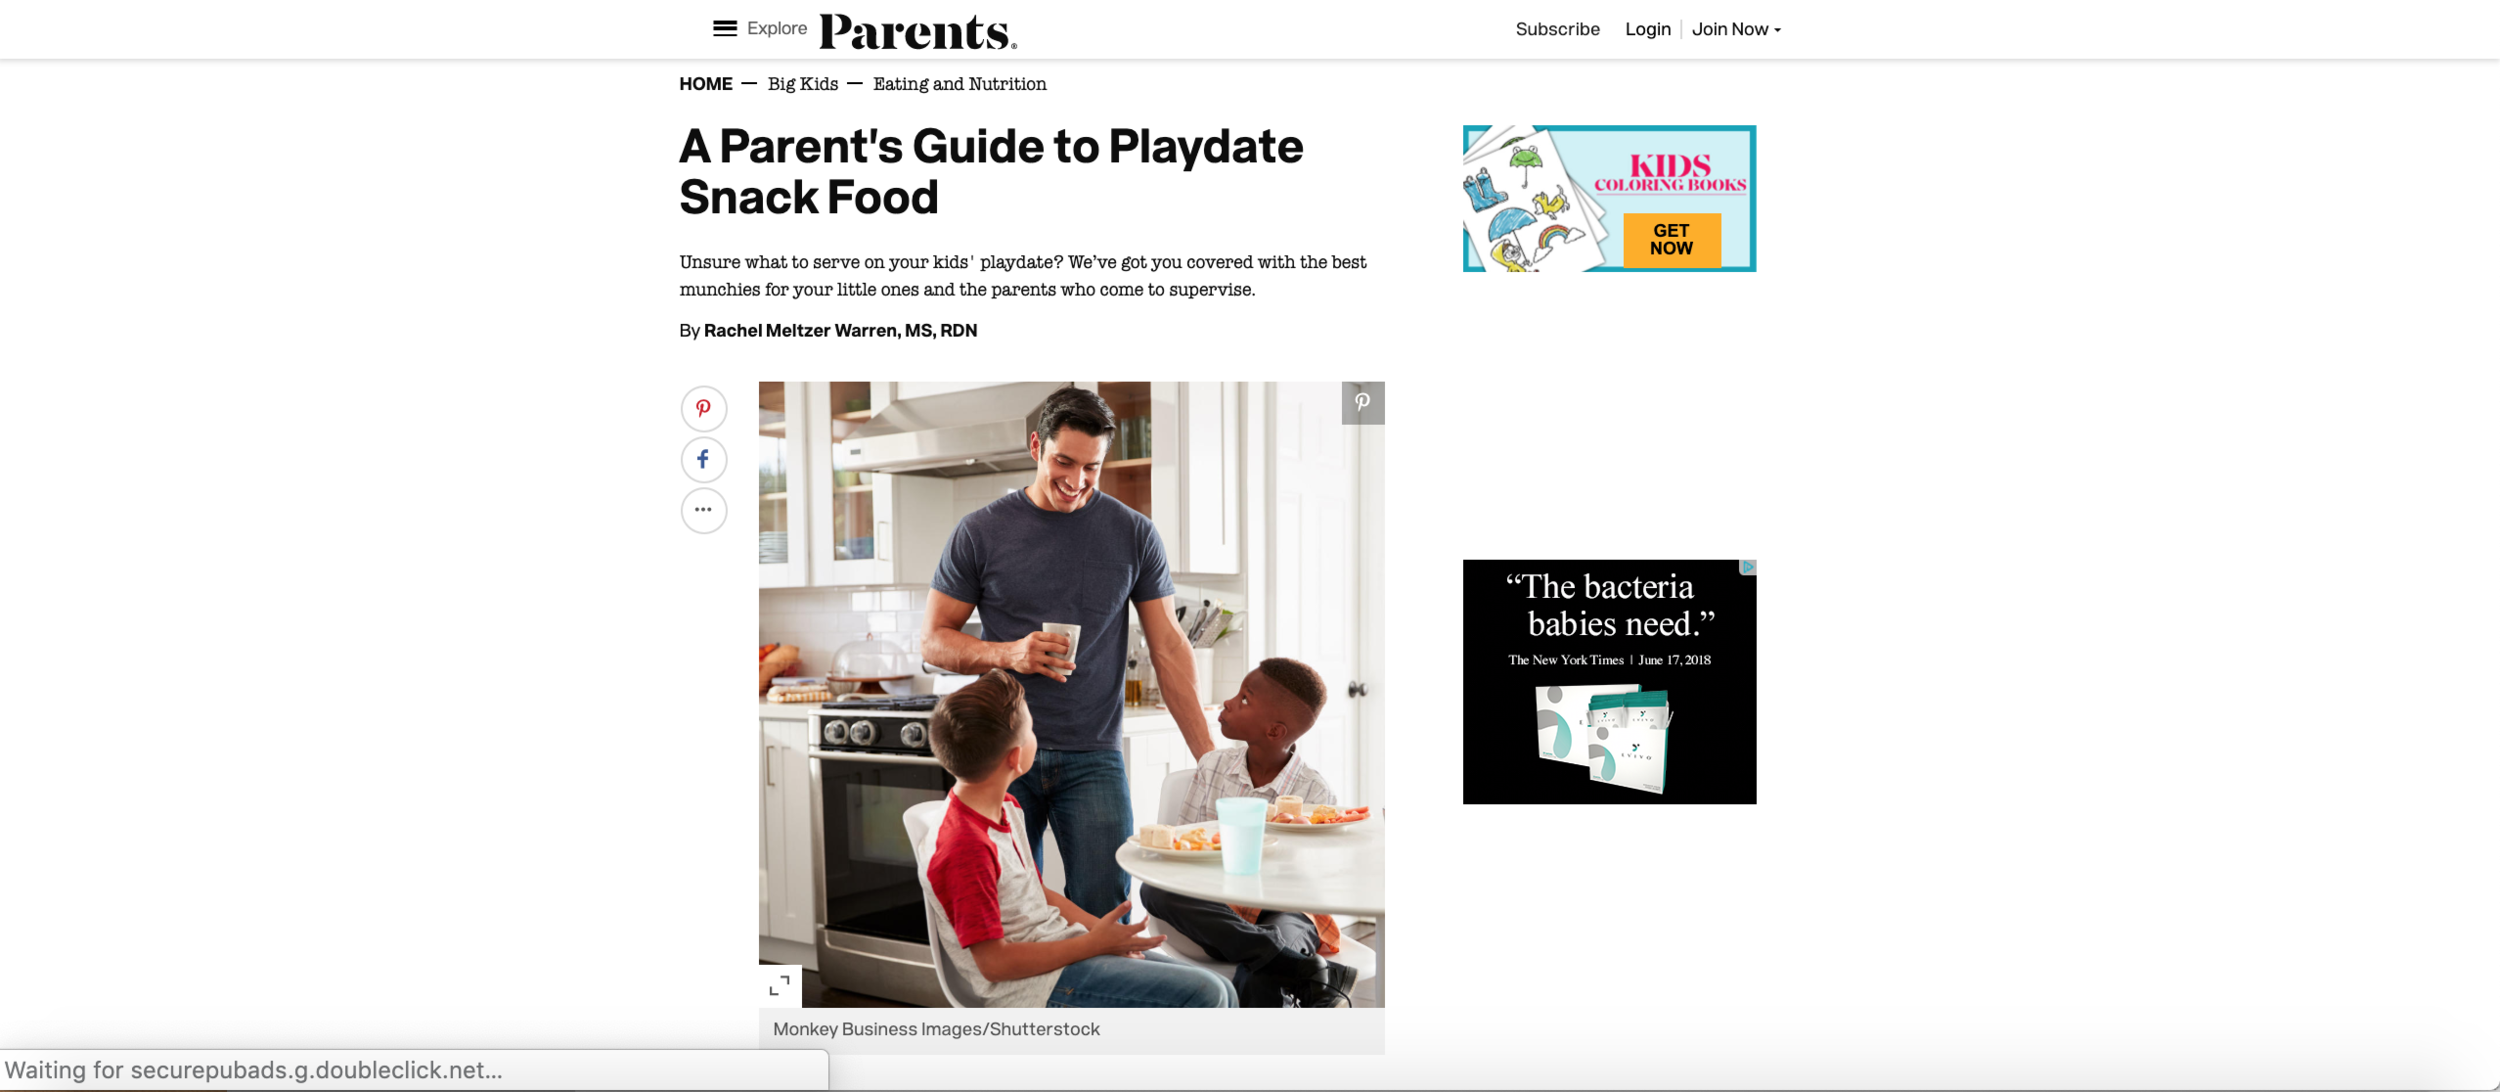 A Parent's Guide to Playdate Snack Food